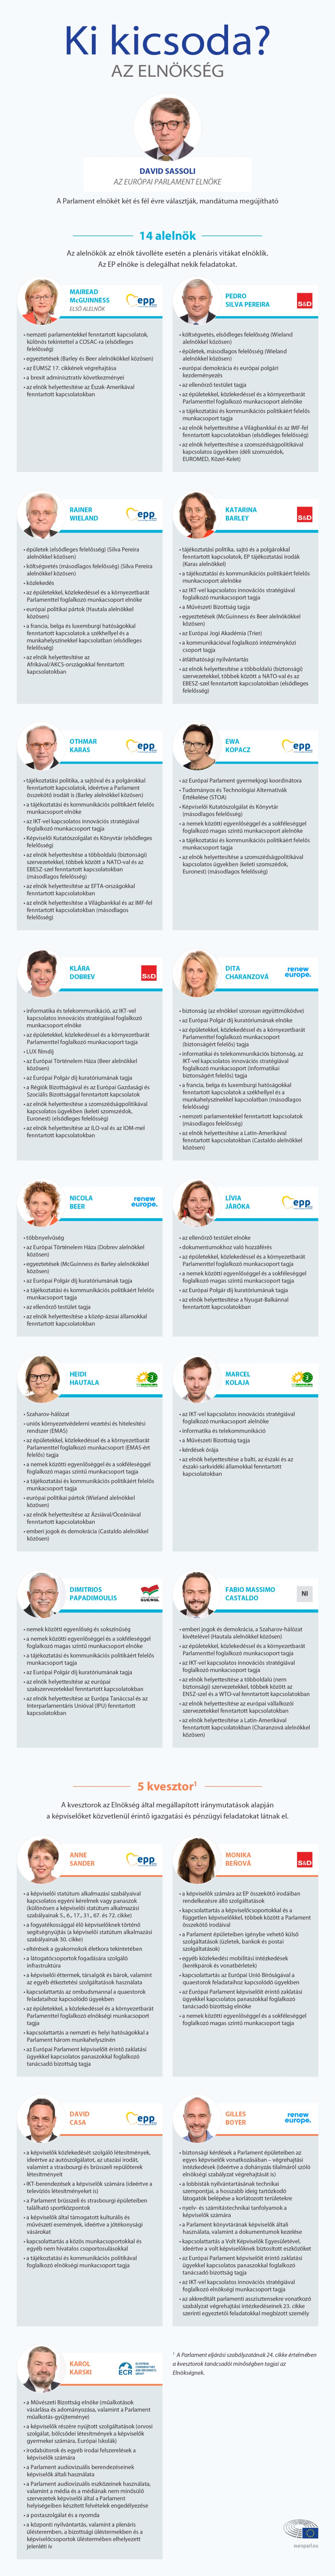 infographic on Who's who in the Bureau of the European Parliament